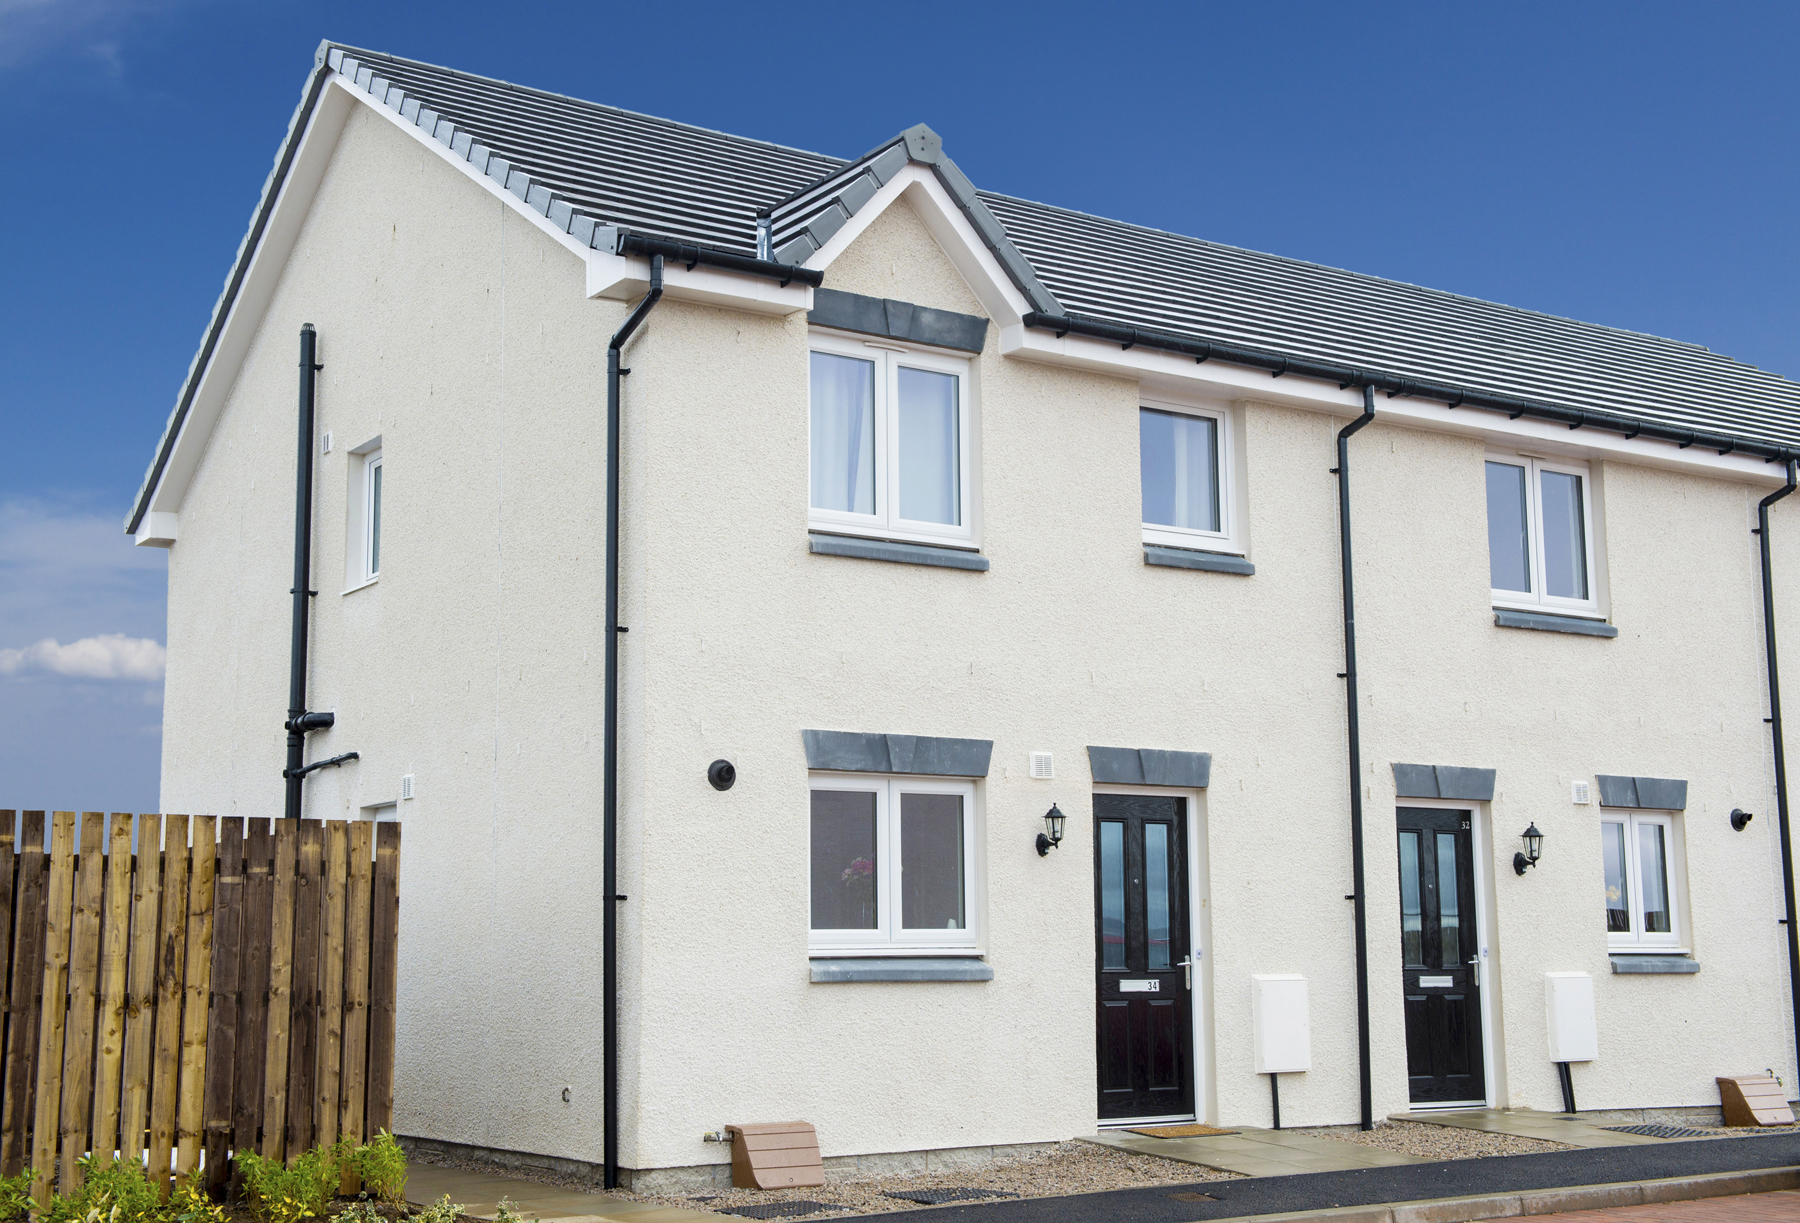 Taylor Wimpey Garioch View New Homes for Sale in Inverurie, Aberdeenshire